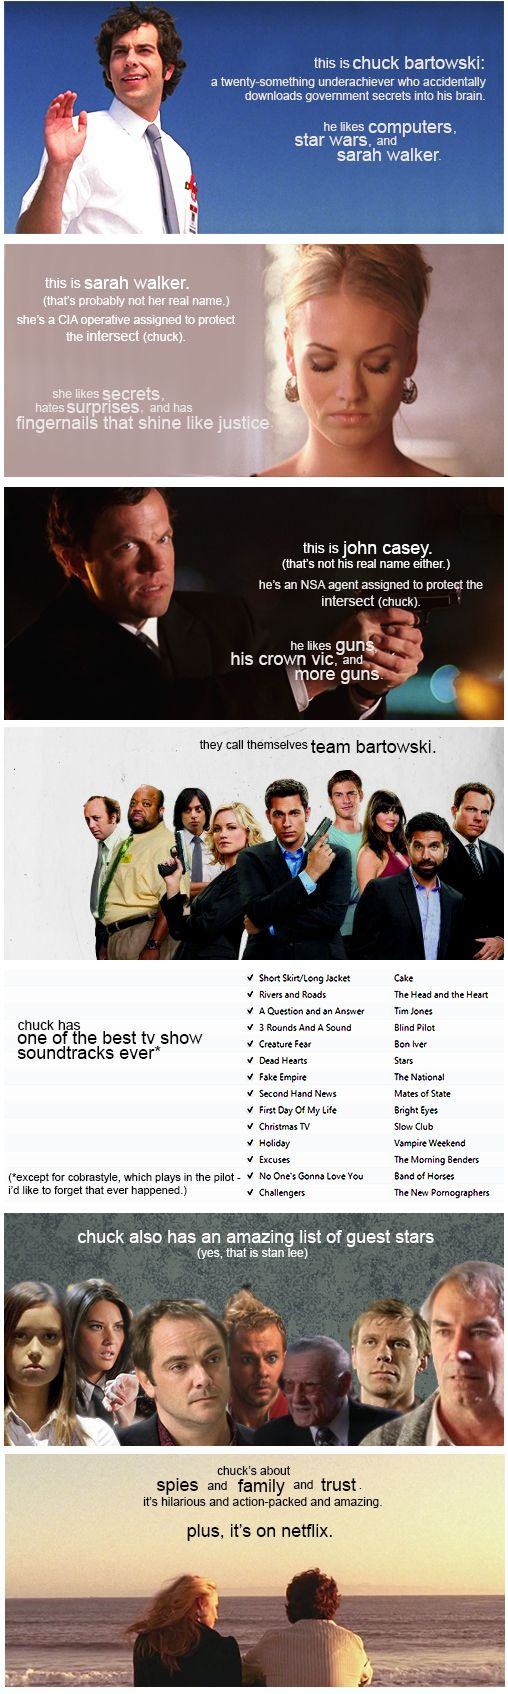 The awesomeness of the show Chuck